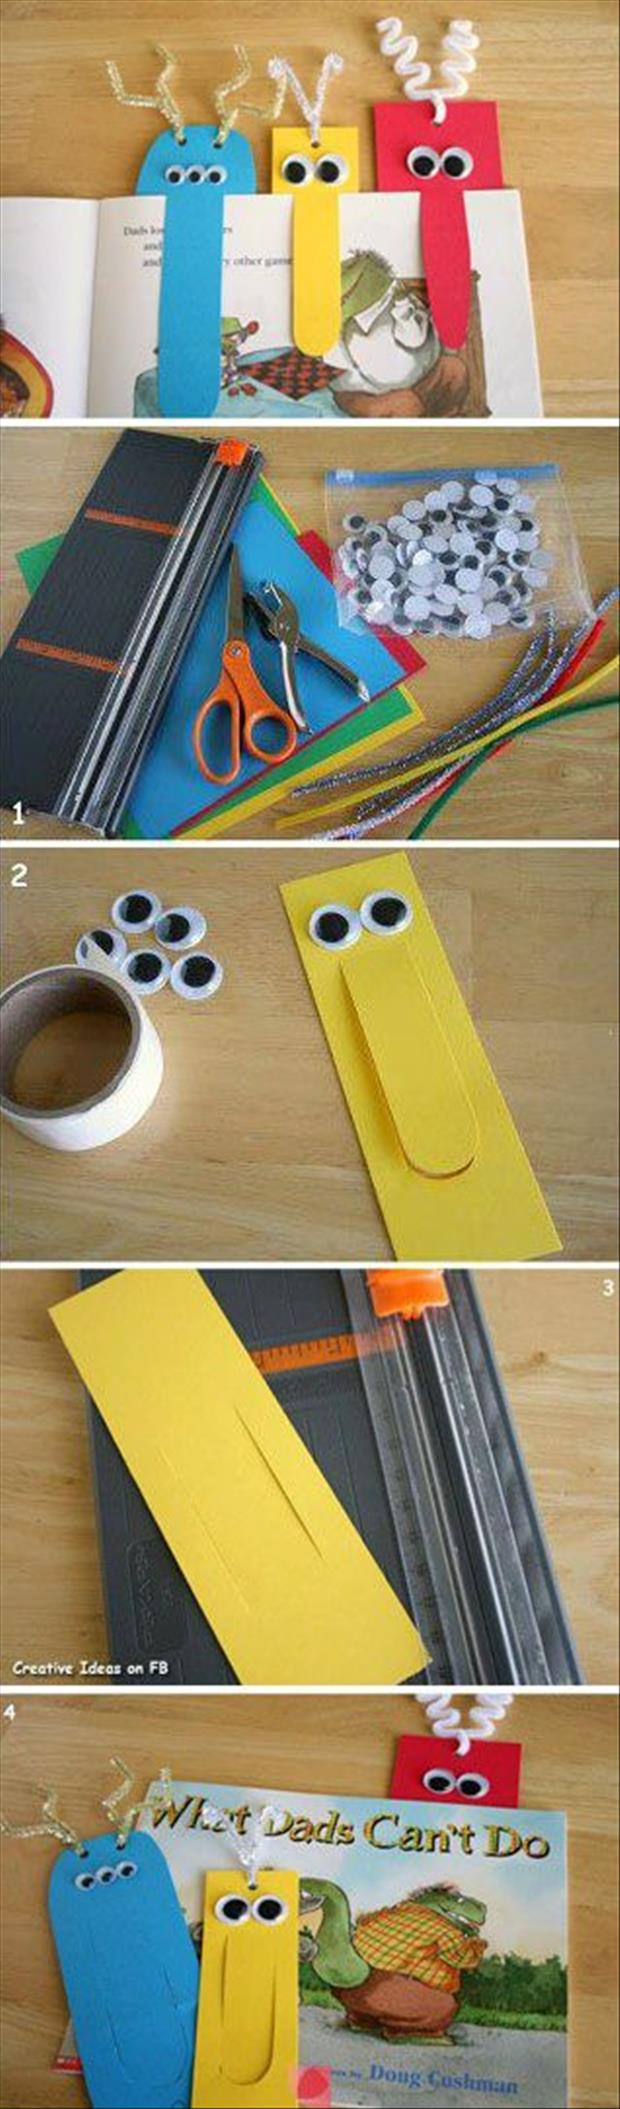 14 DIY Craft Ideas…